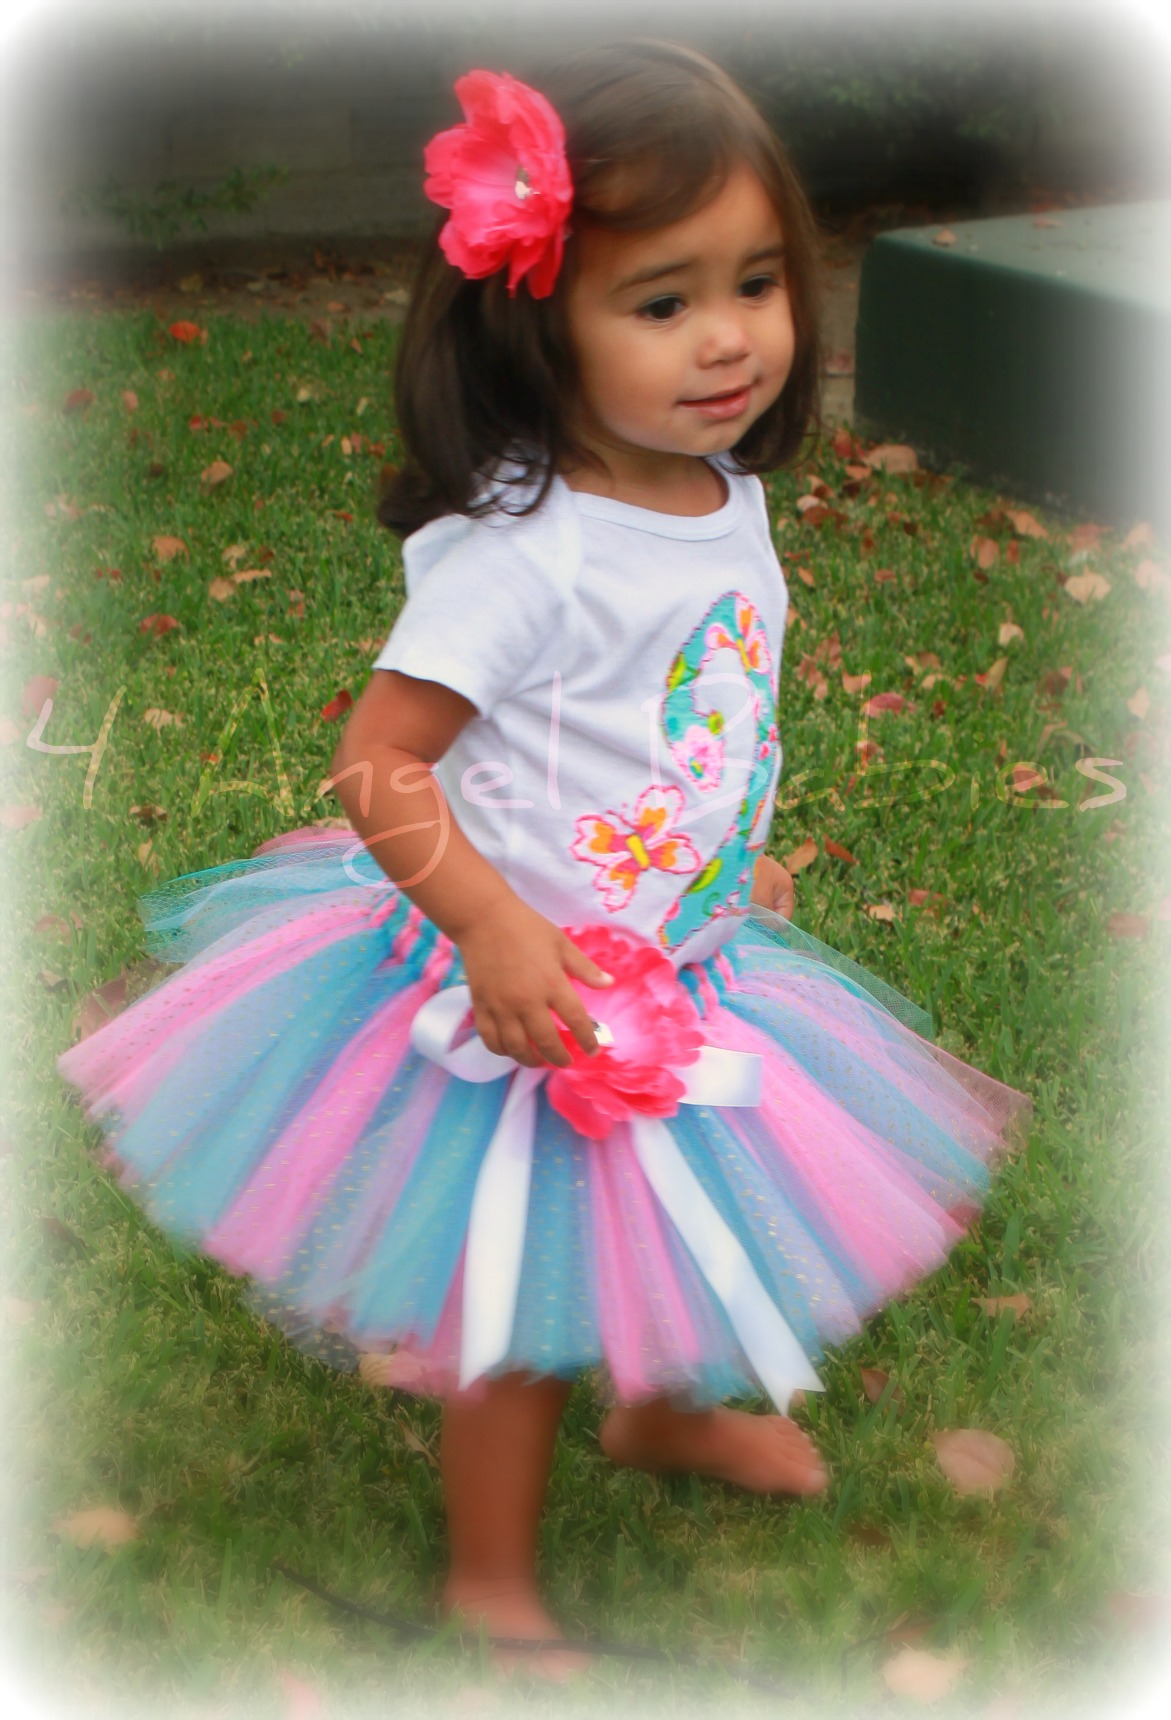 Butterfly Blossom Turquoise Pink Girls Birthday Glitter Outfit